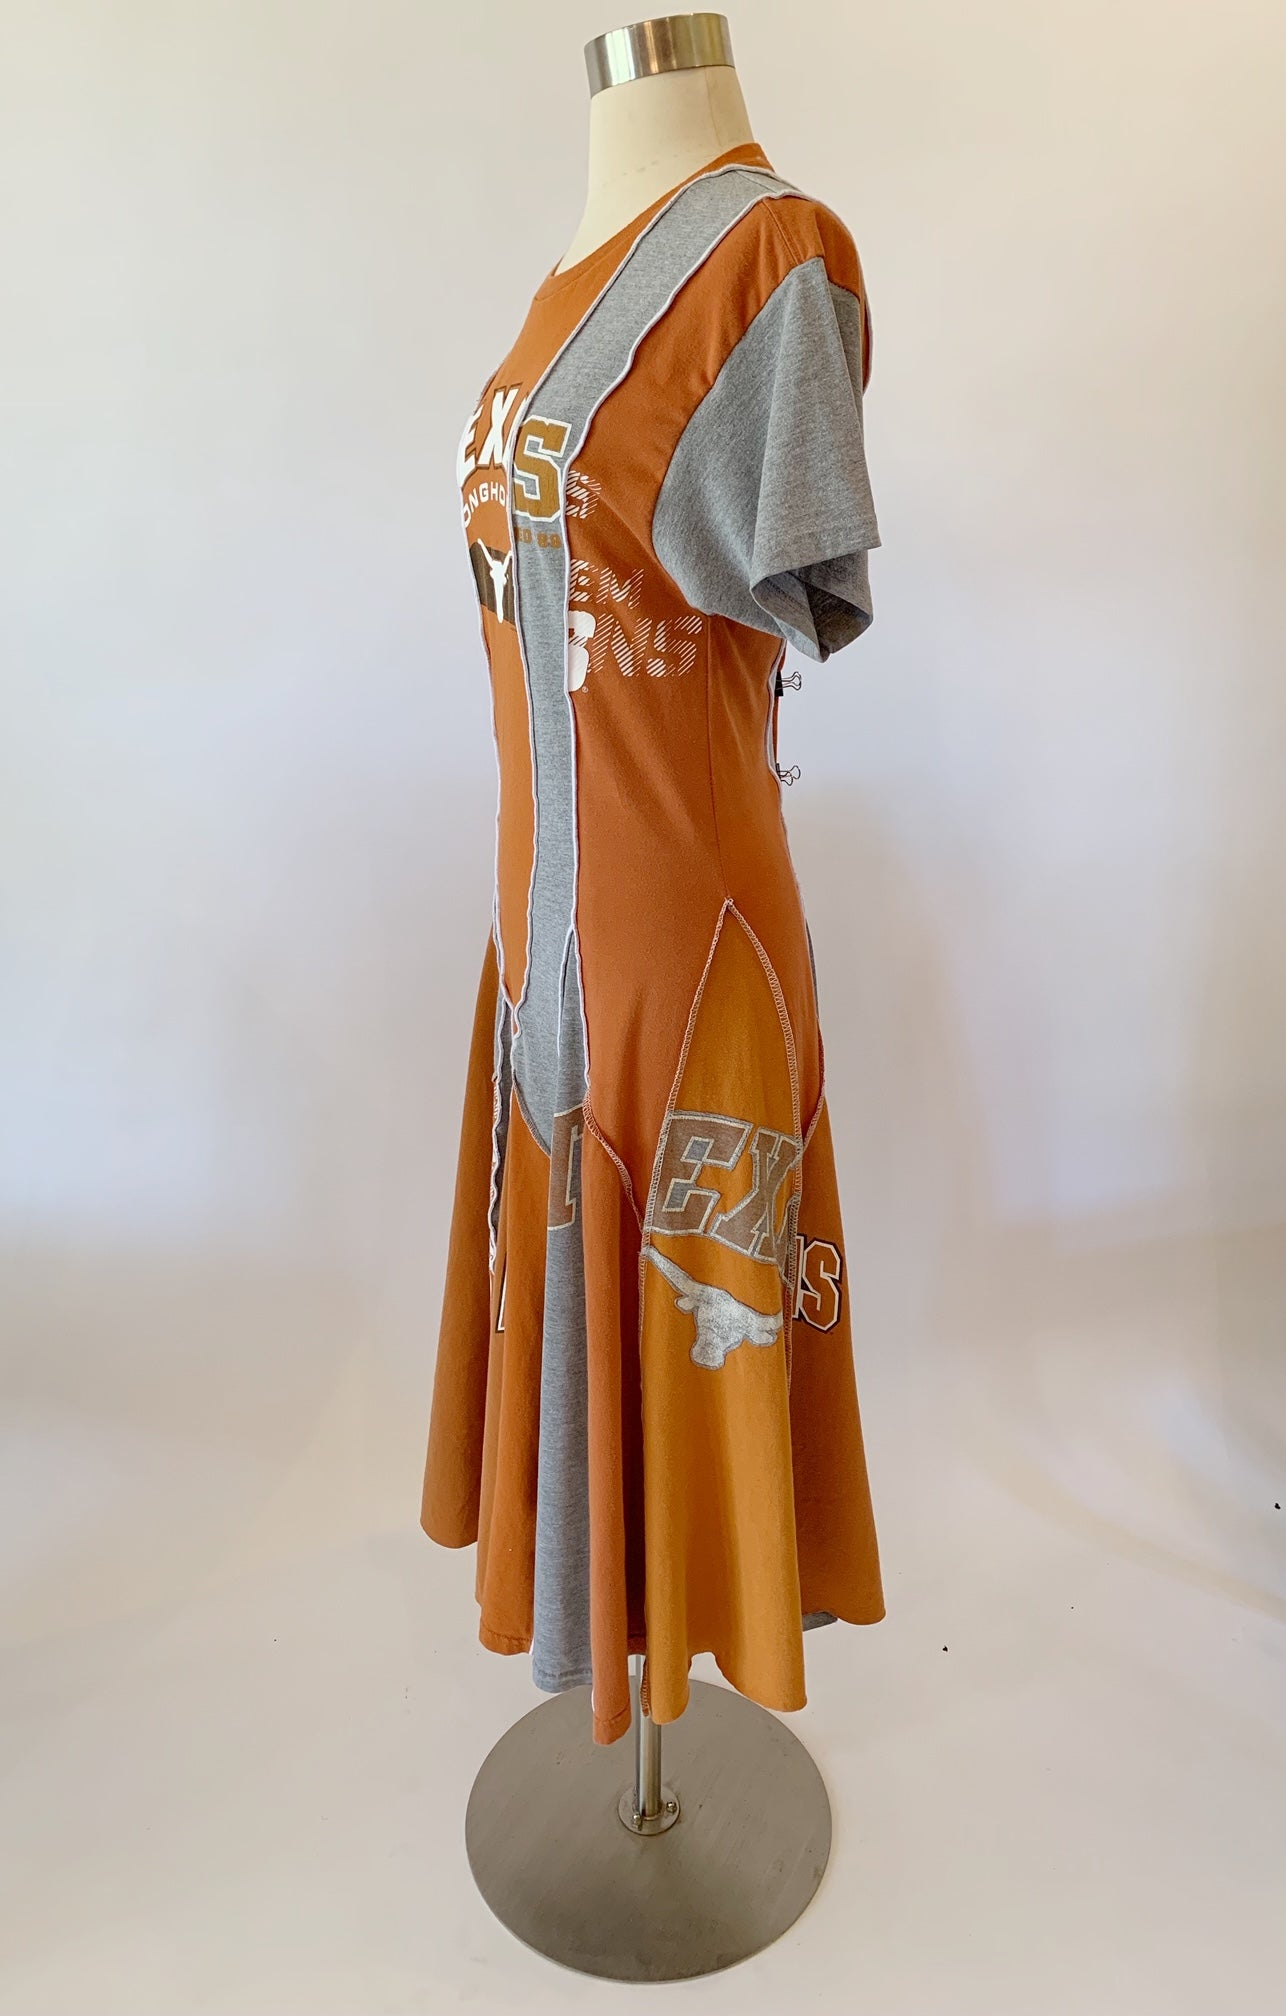 Short Sleeve Longhorns Dress